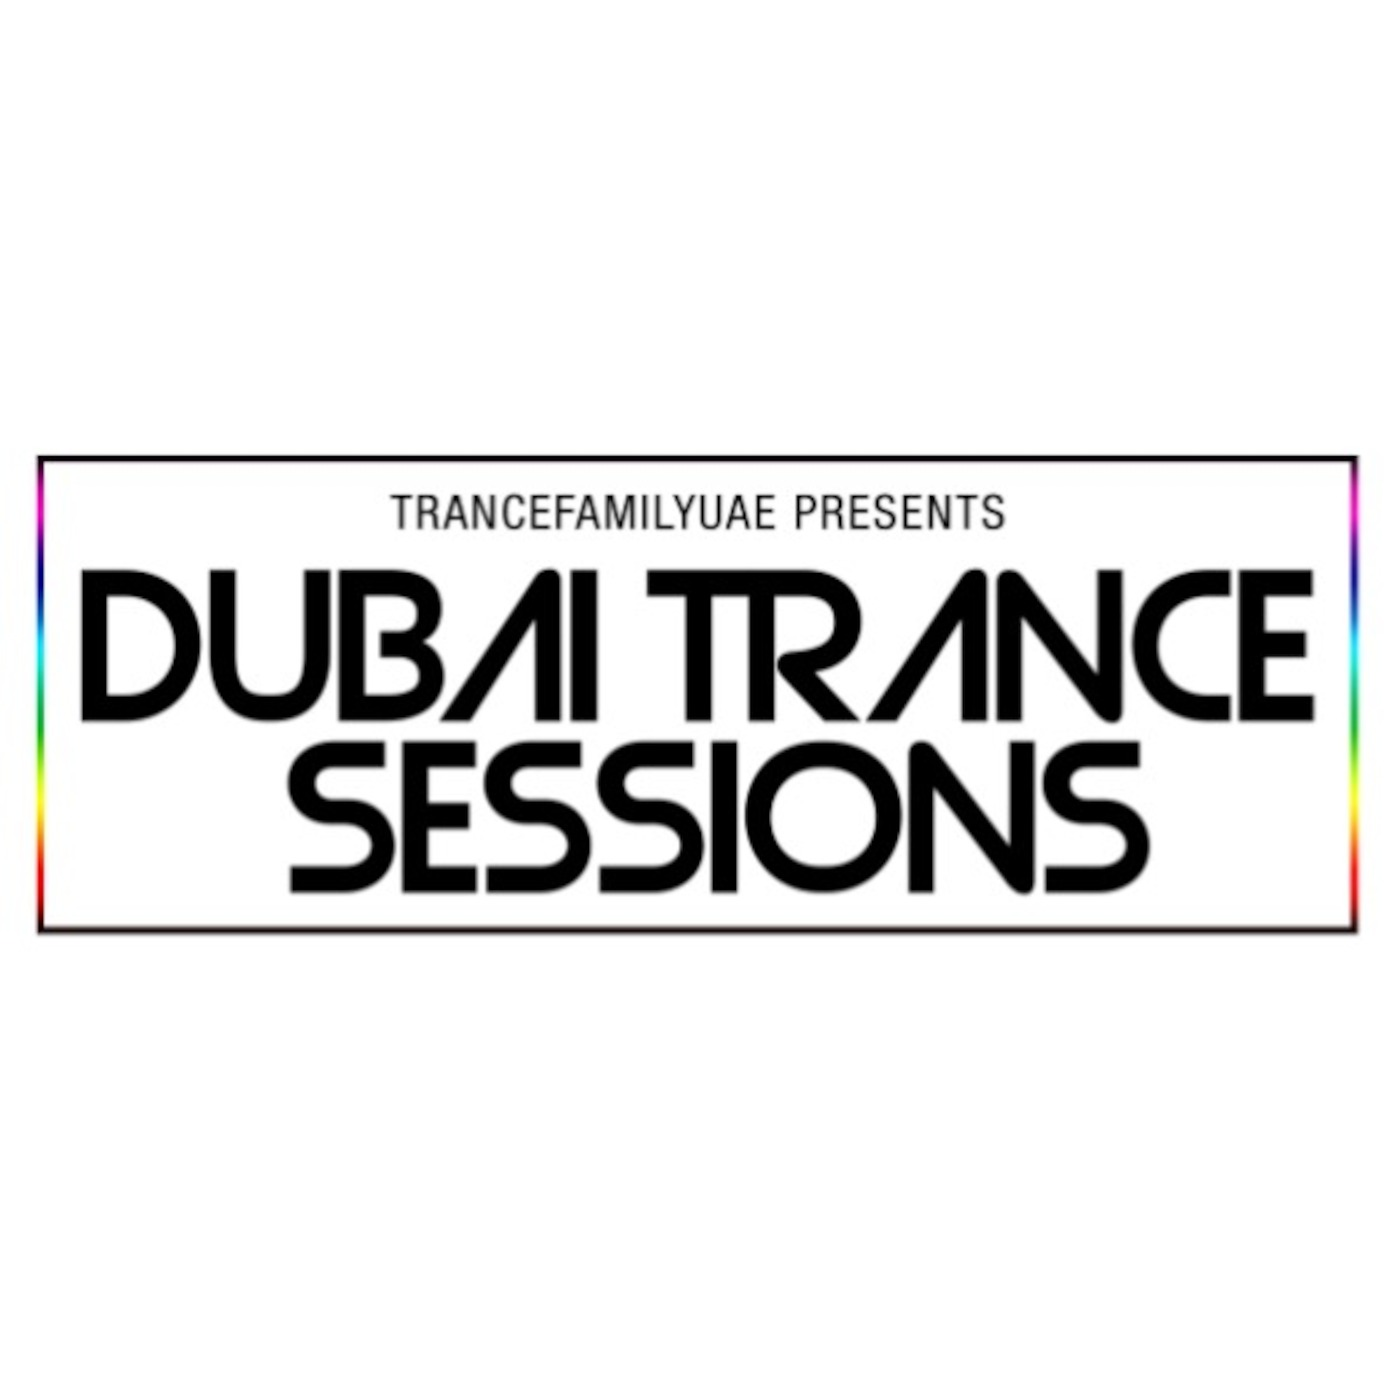 Dubai Trance Sessions